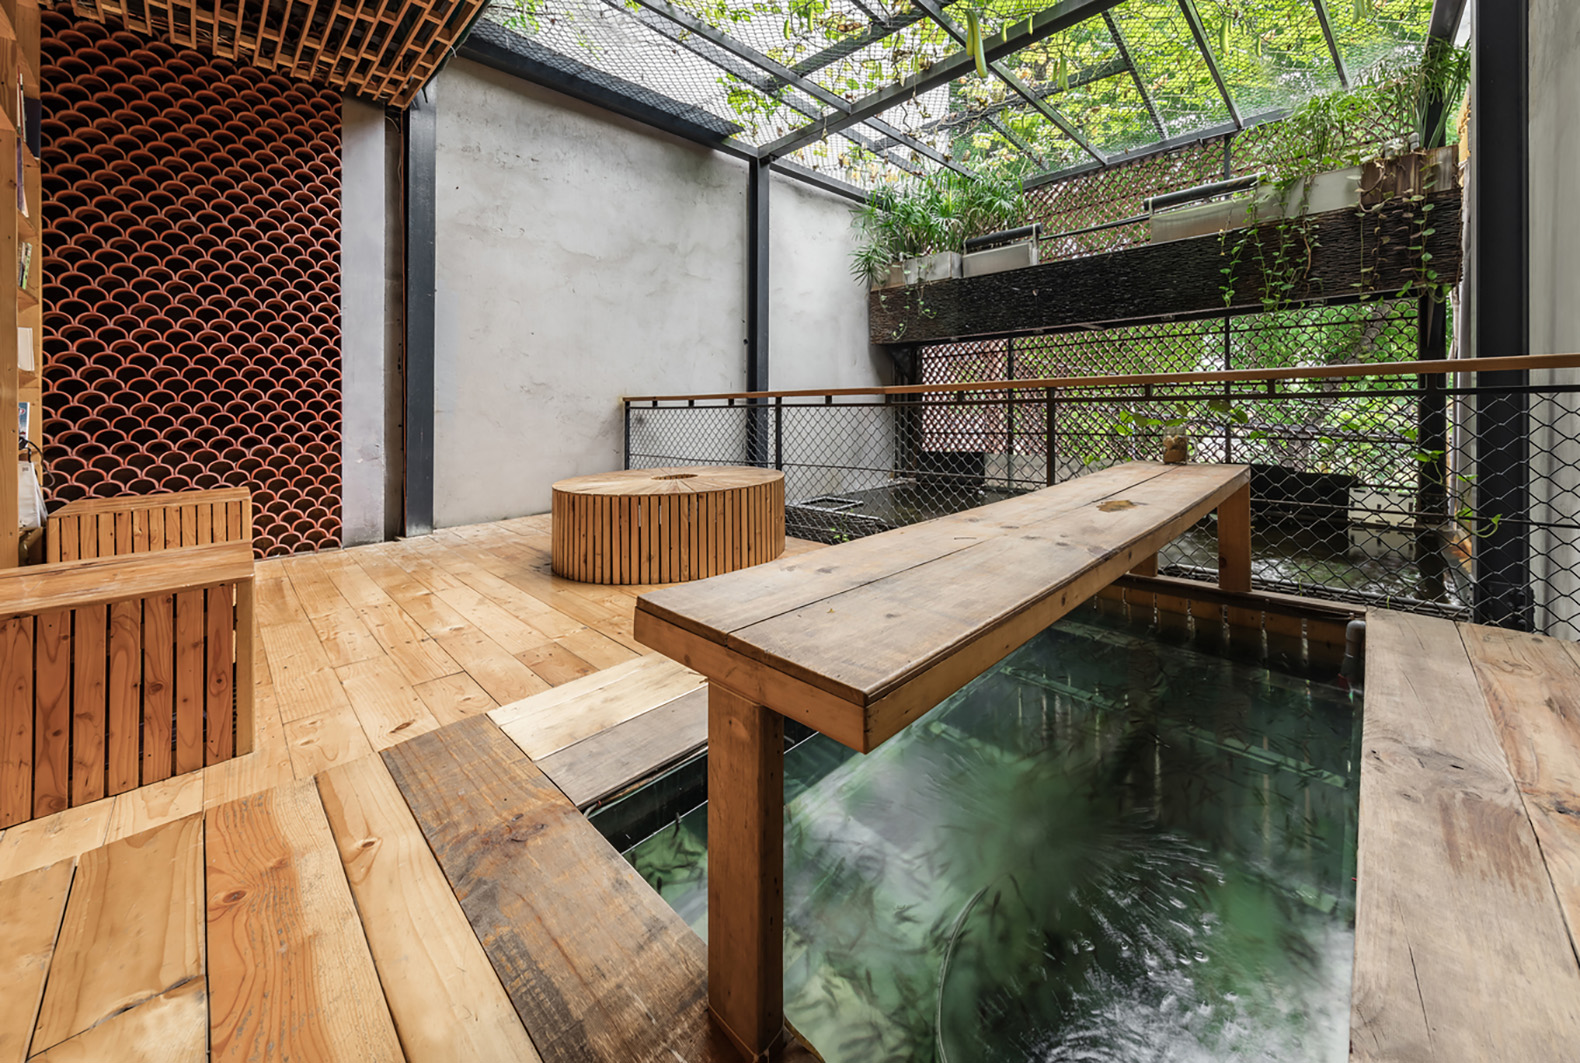 Hanoi S Koi Cafe Has A Thriving Ecosystem Complete With An